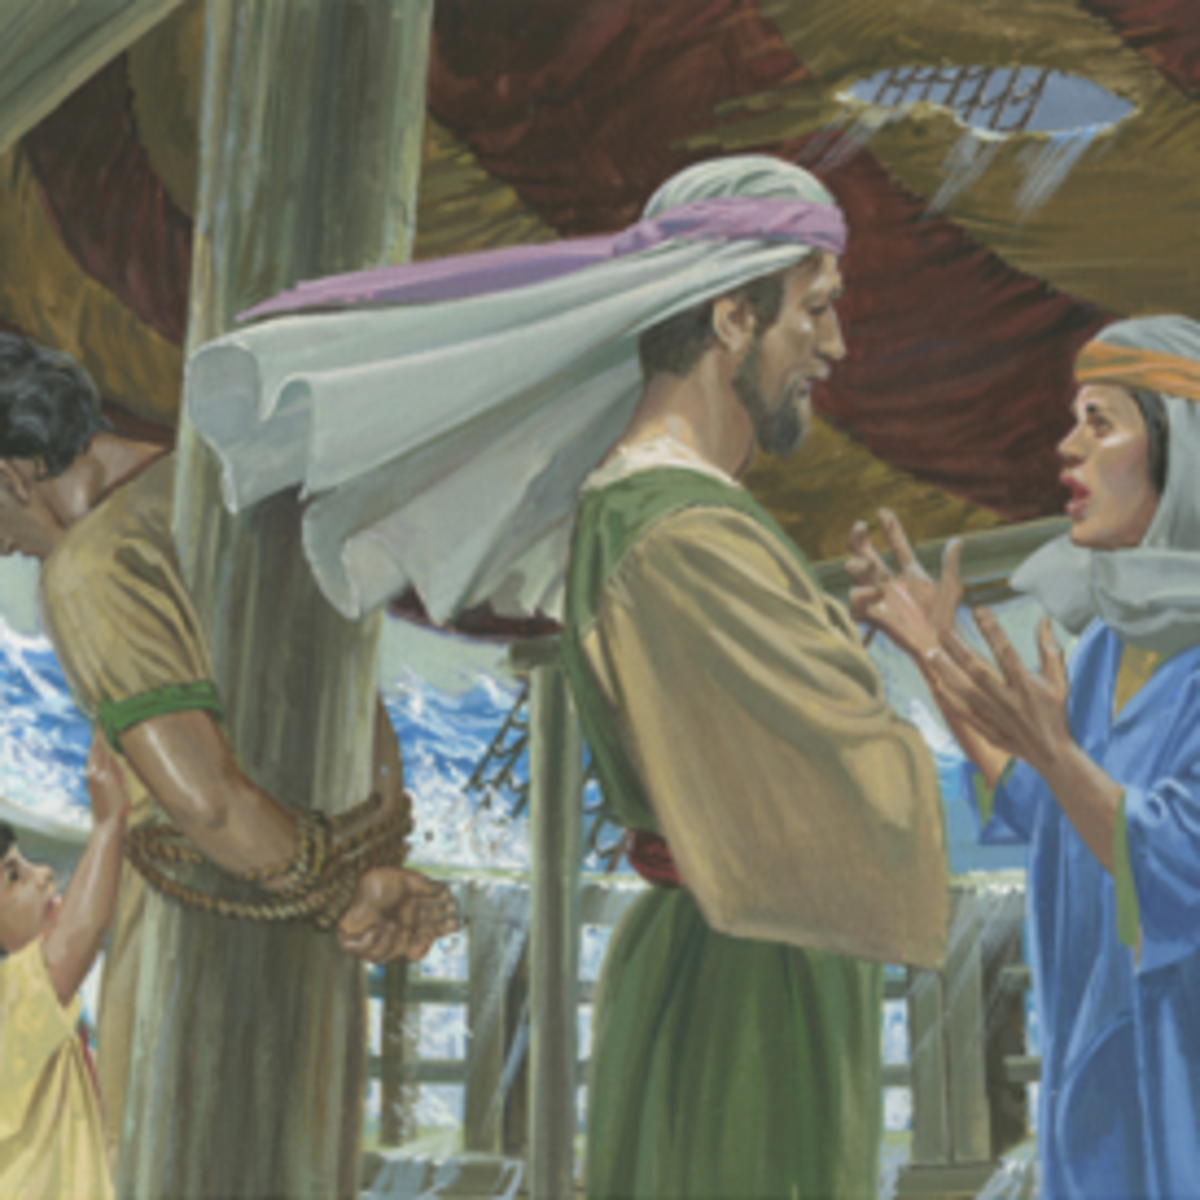 Nephi and wife